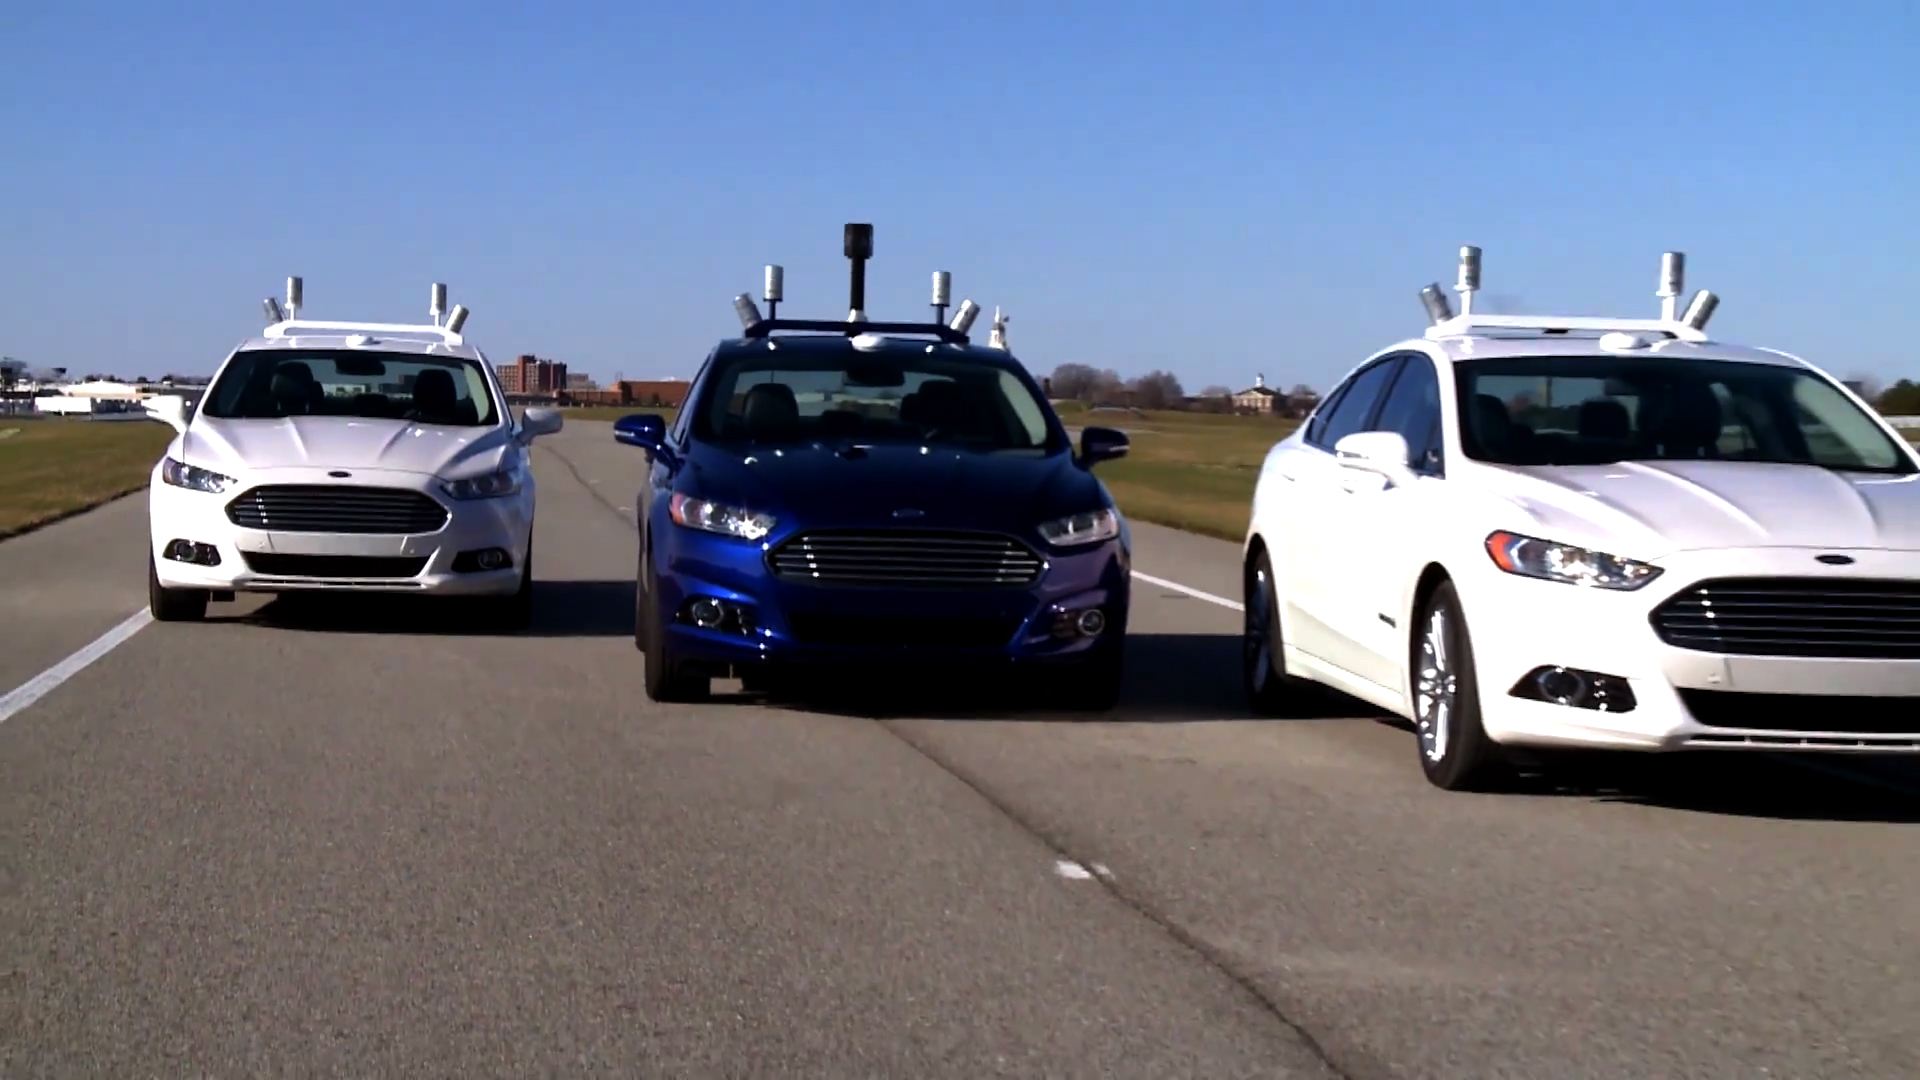 Video: Smarter Driver: Will self-driving cars ever be legal?